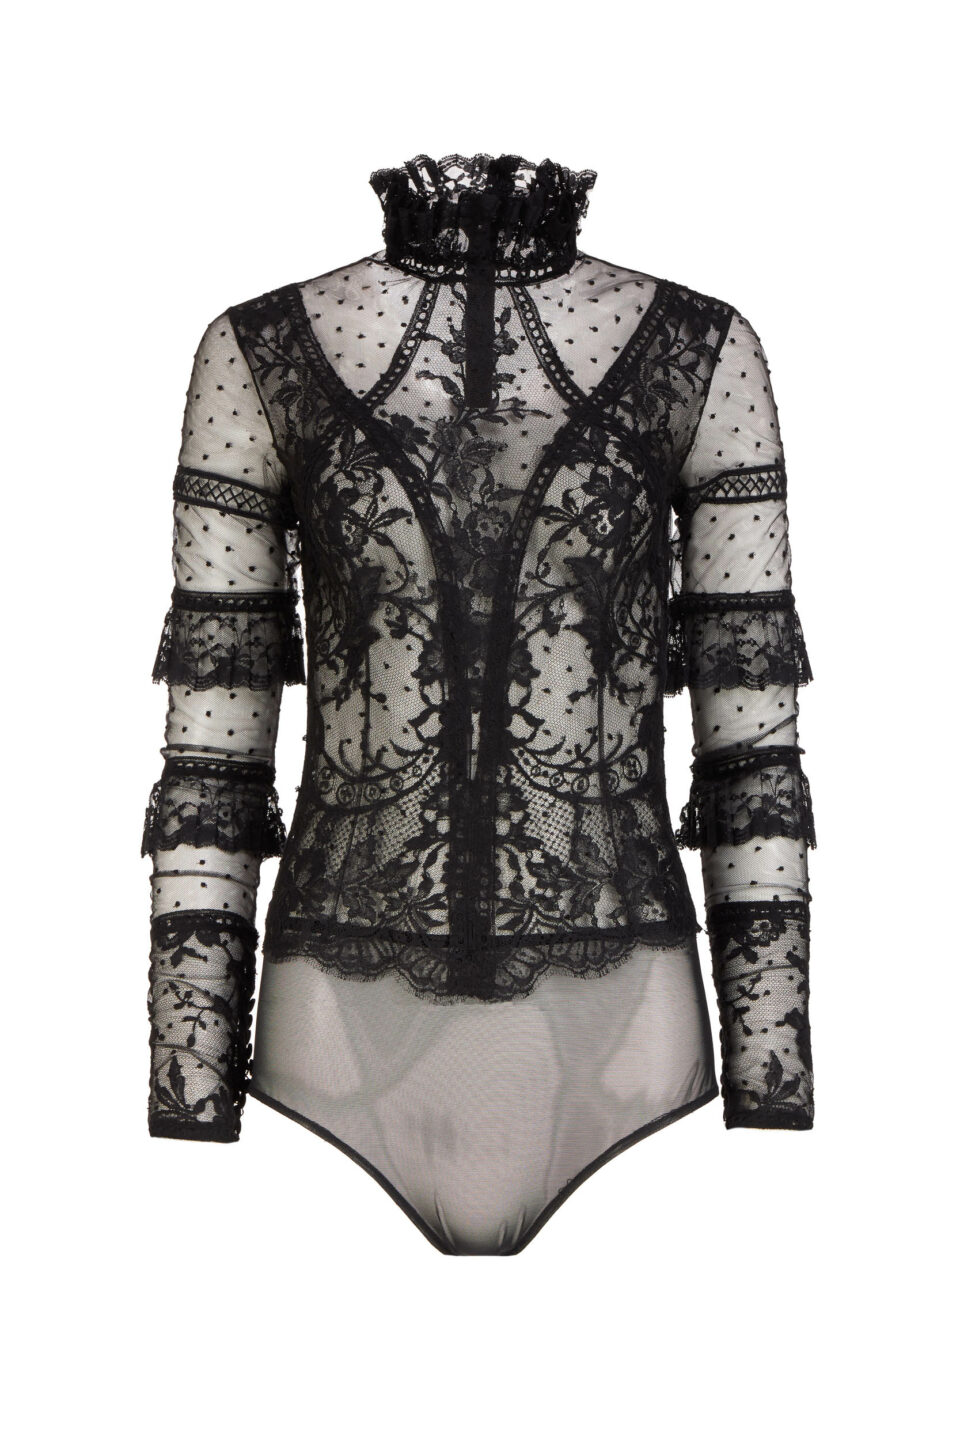 Anastasia FW2153 Black Dotted French Tulle & French Lace Bodysuit with Ruffle Details